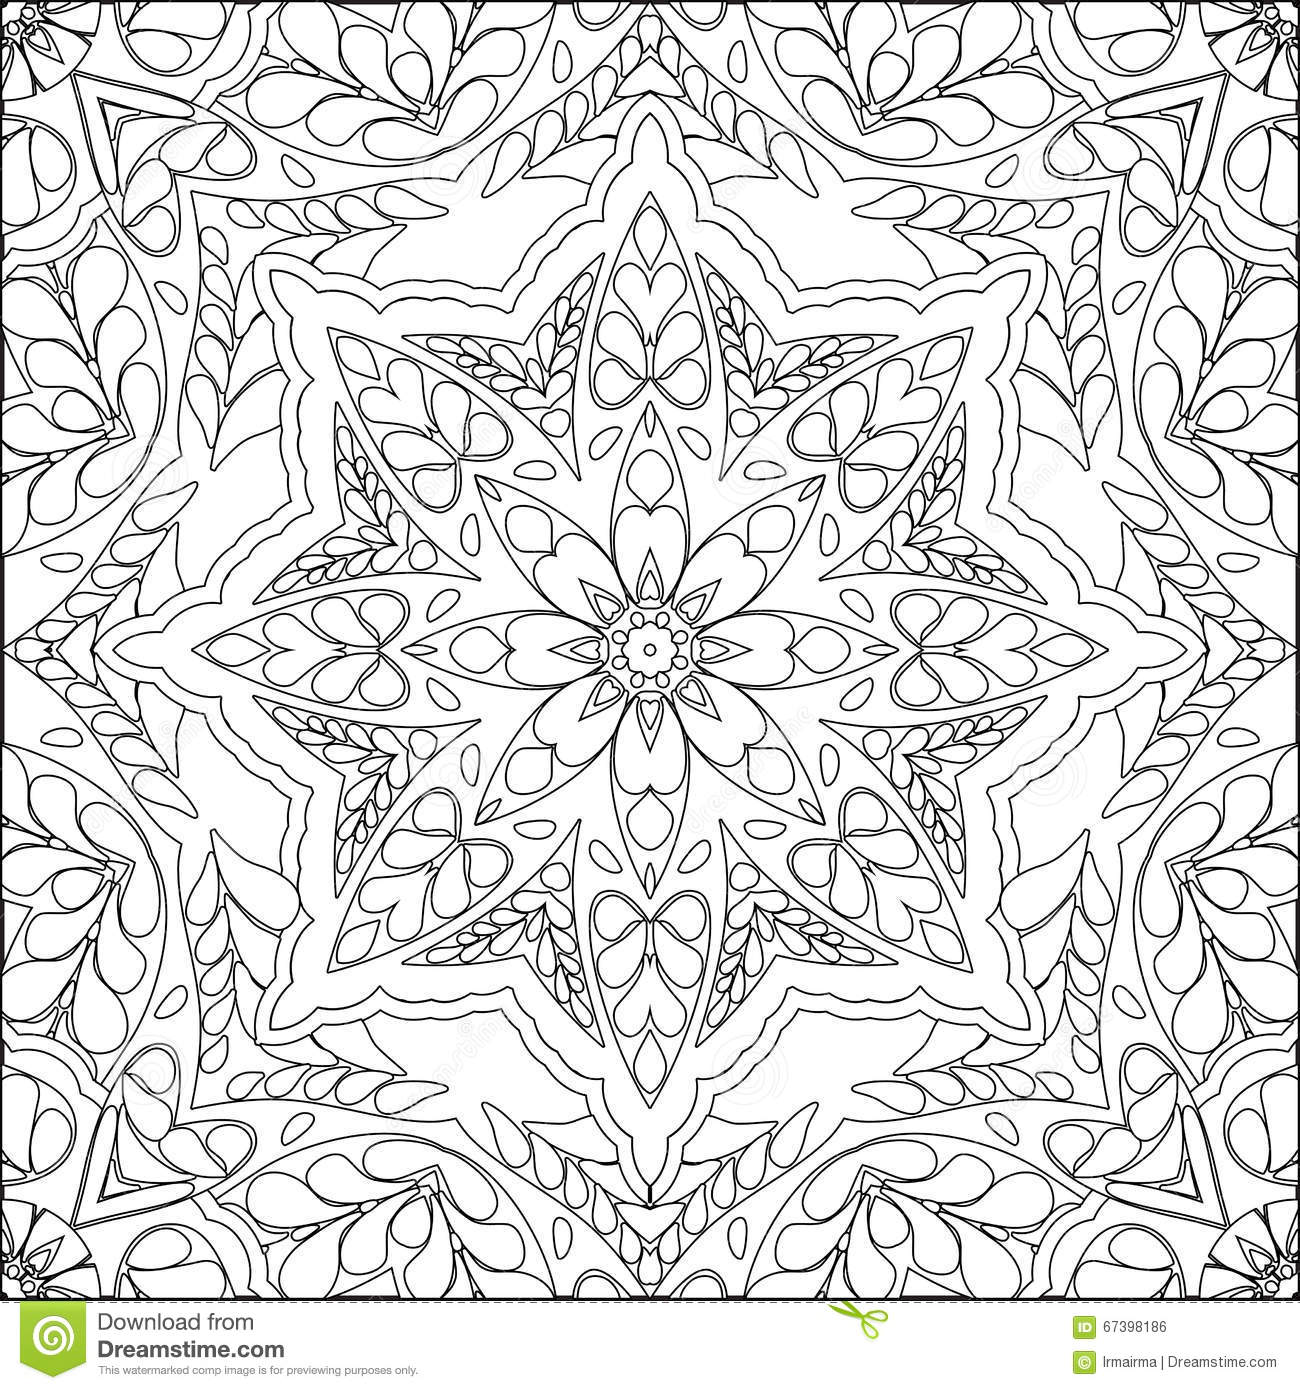 Coloring page mandala stock vector. Illustration of pattern - 67398186